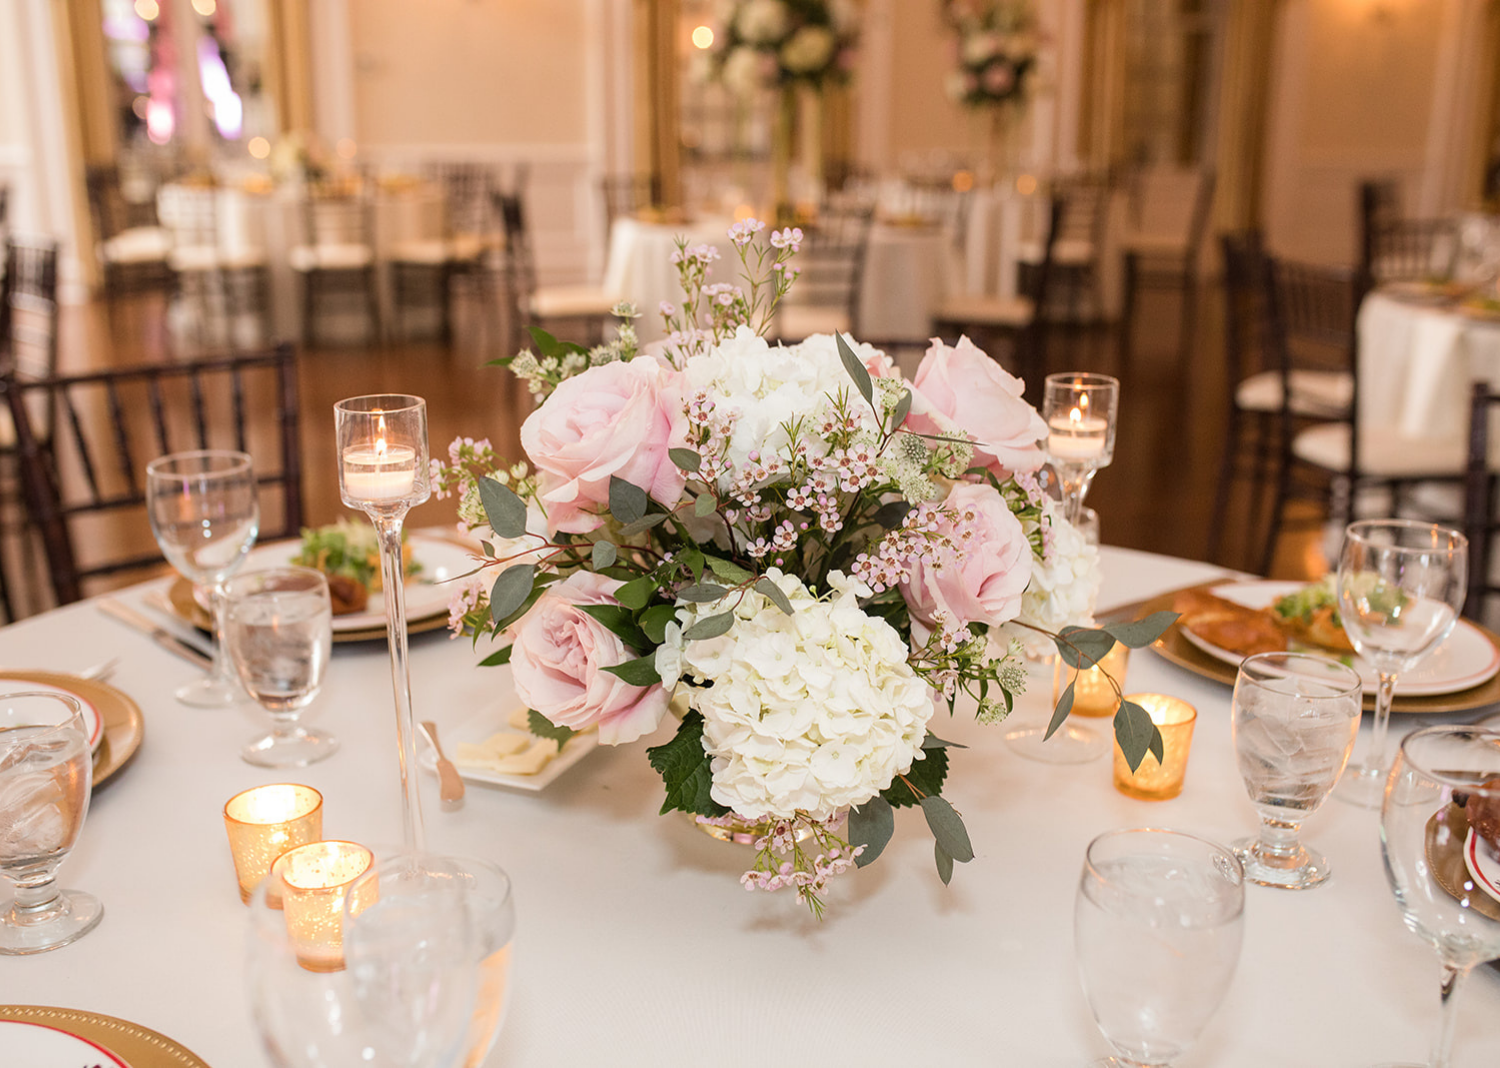 wedding recpetion decorations at the Elkridge country club